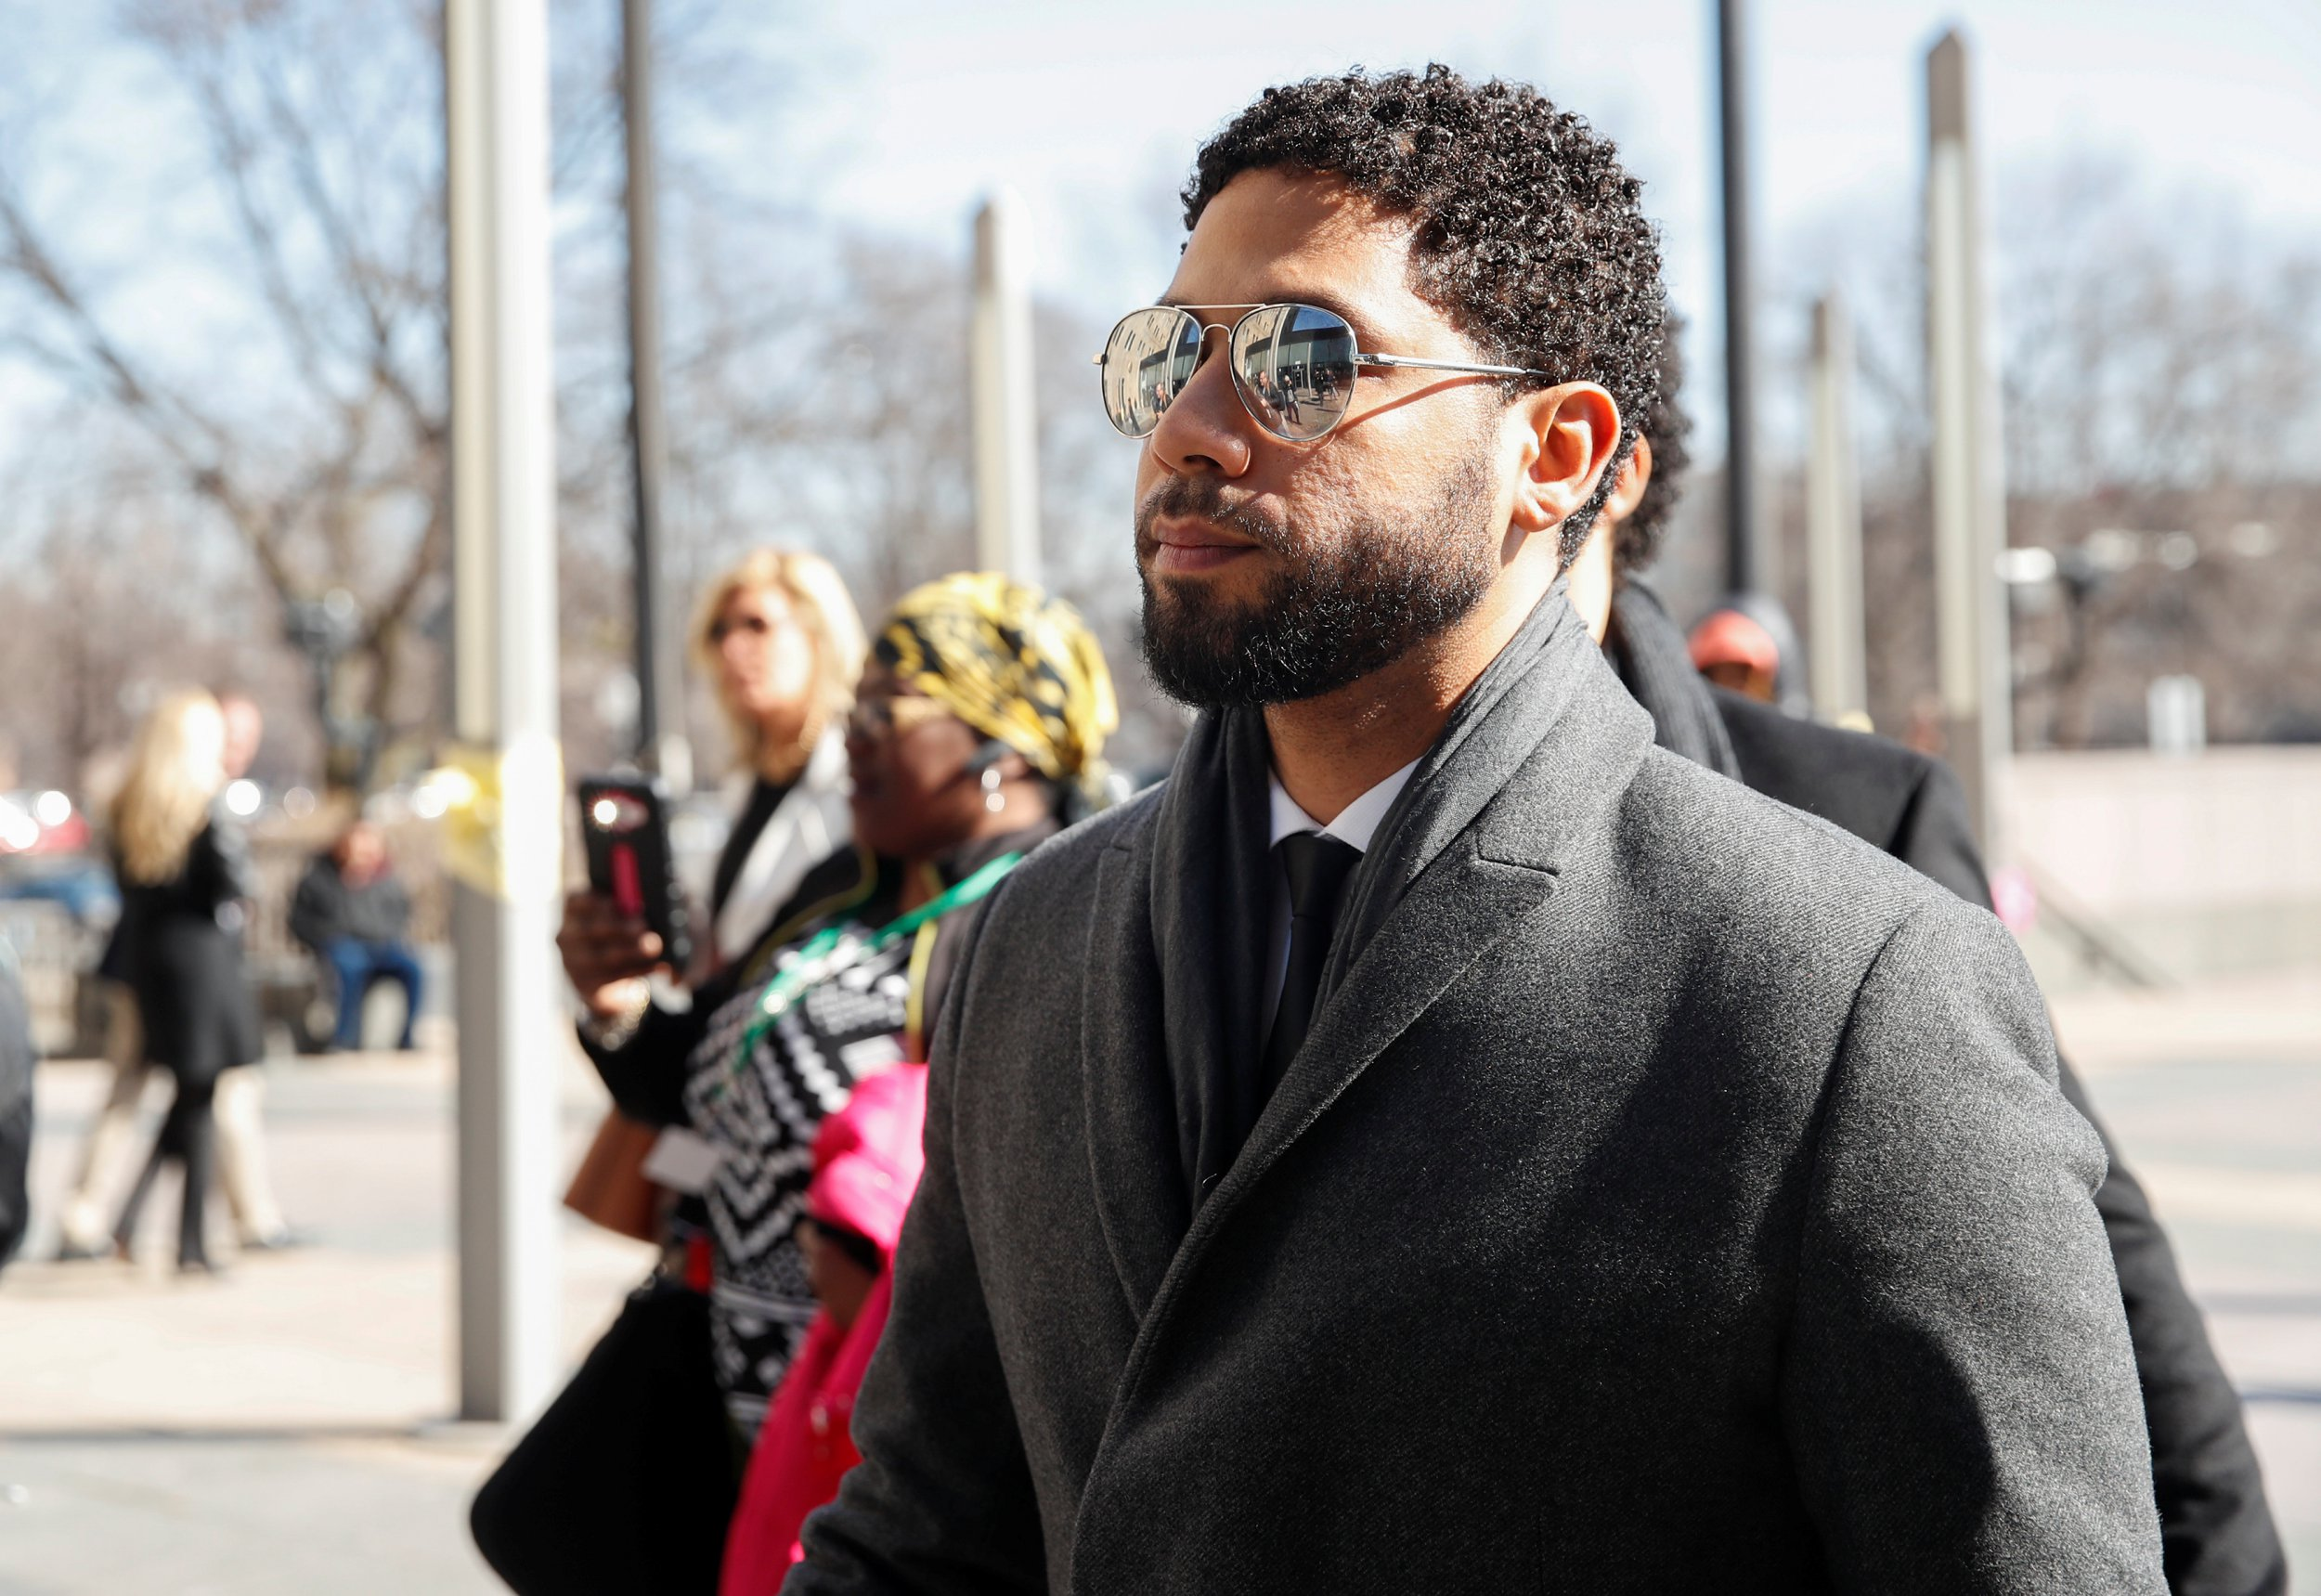 Jussie Smollett confidently struts into court hearing he didn't have to attend as he faces 16 charges